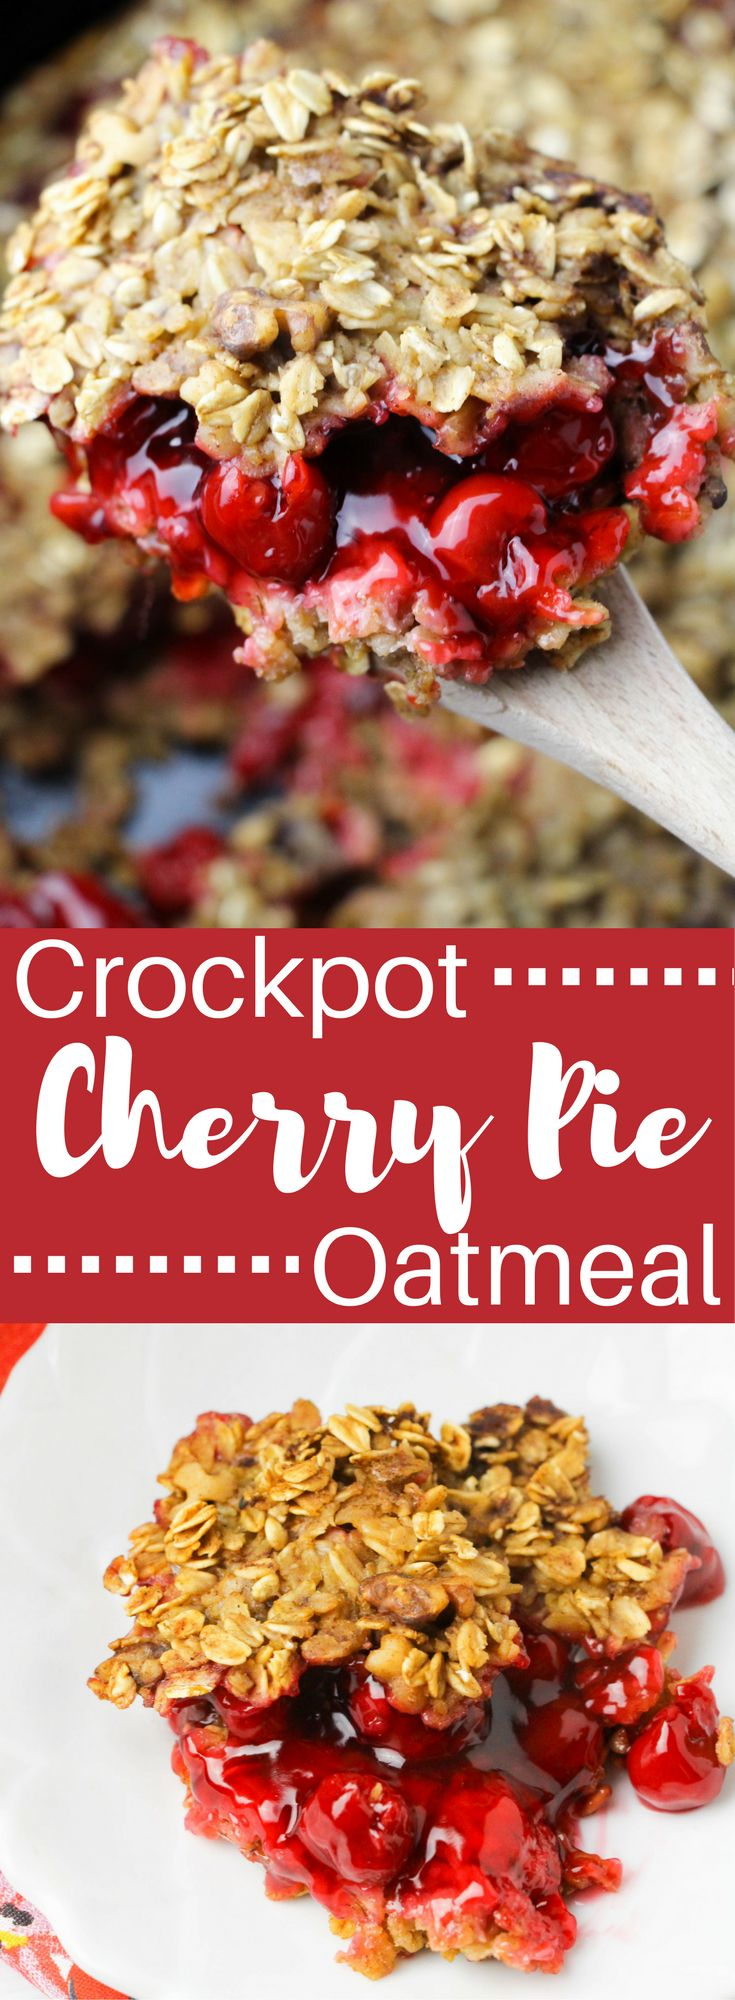 This cherry pie oatmeal is going to be one of your favorite weekday breakfasts. You'll love how easy and healthy it is and your kids will love this breakfast that tastes like dessert.